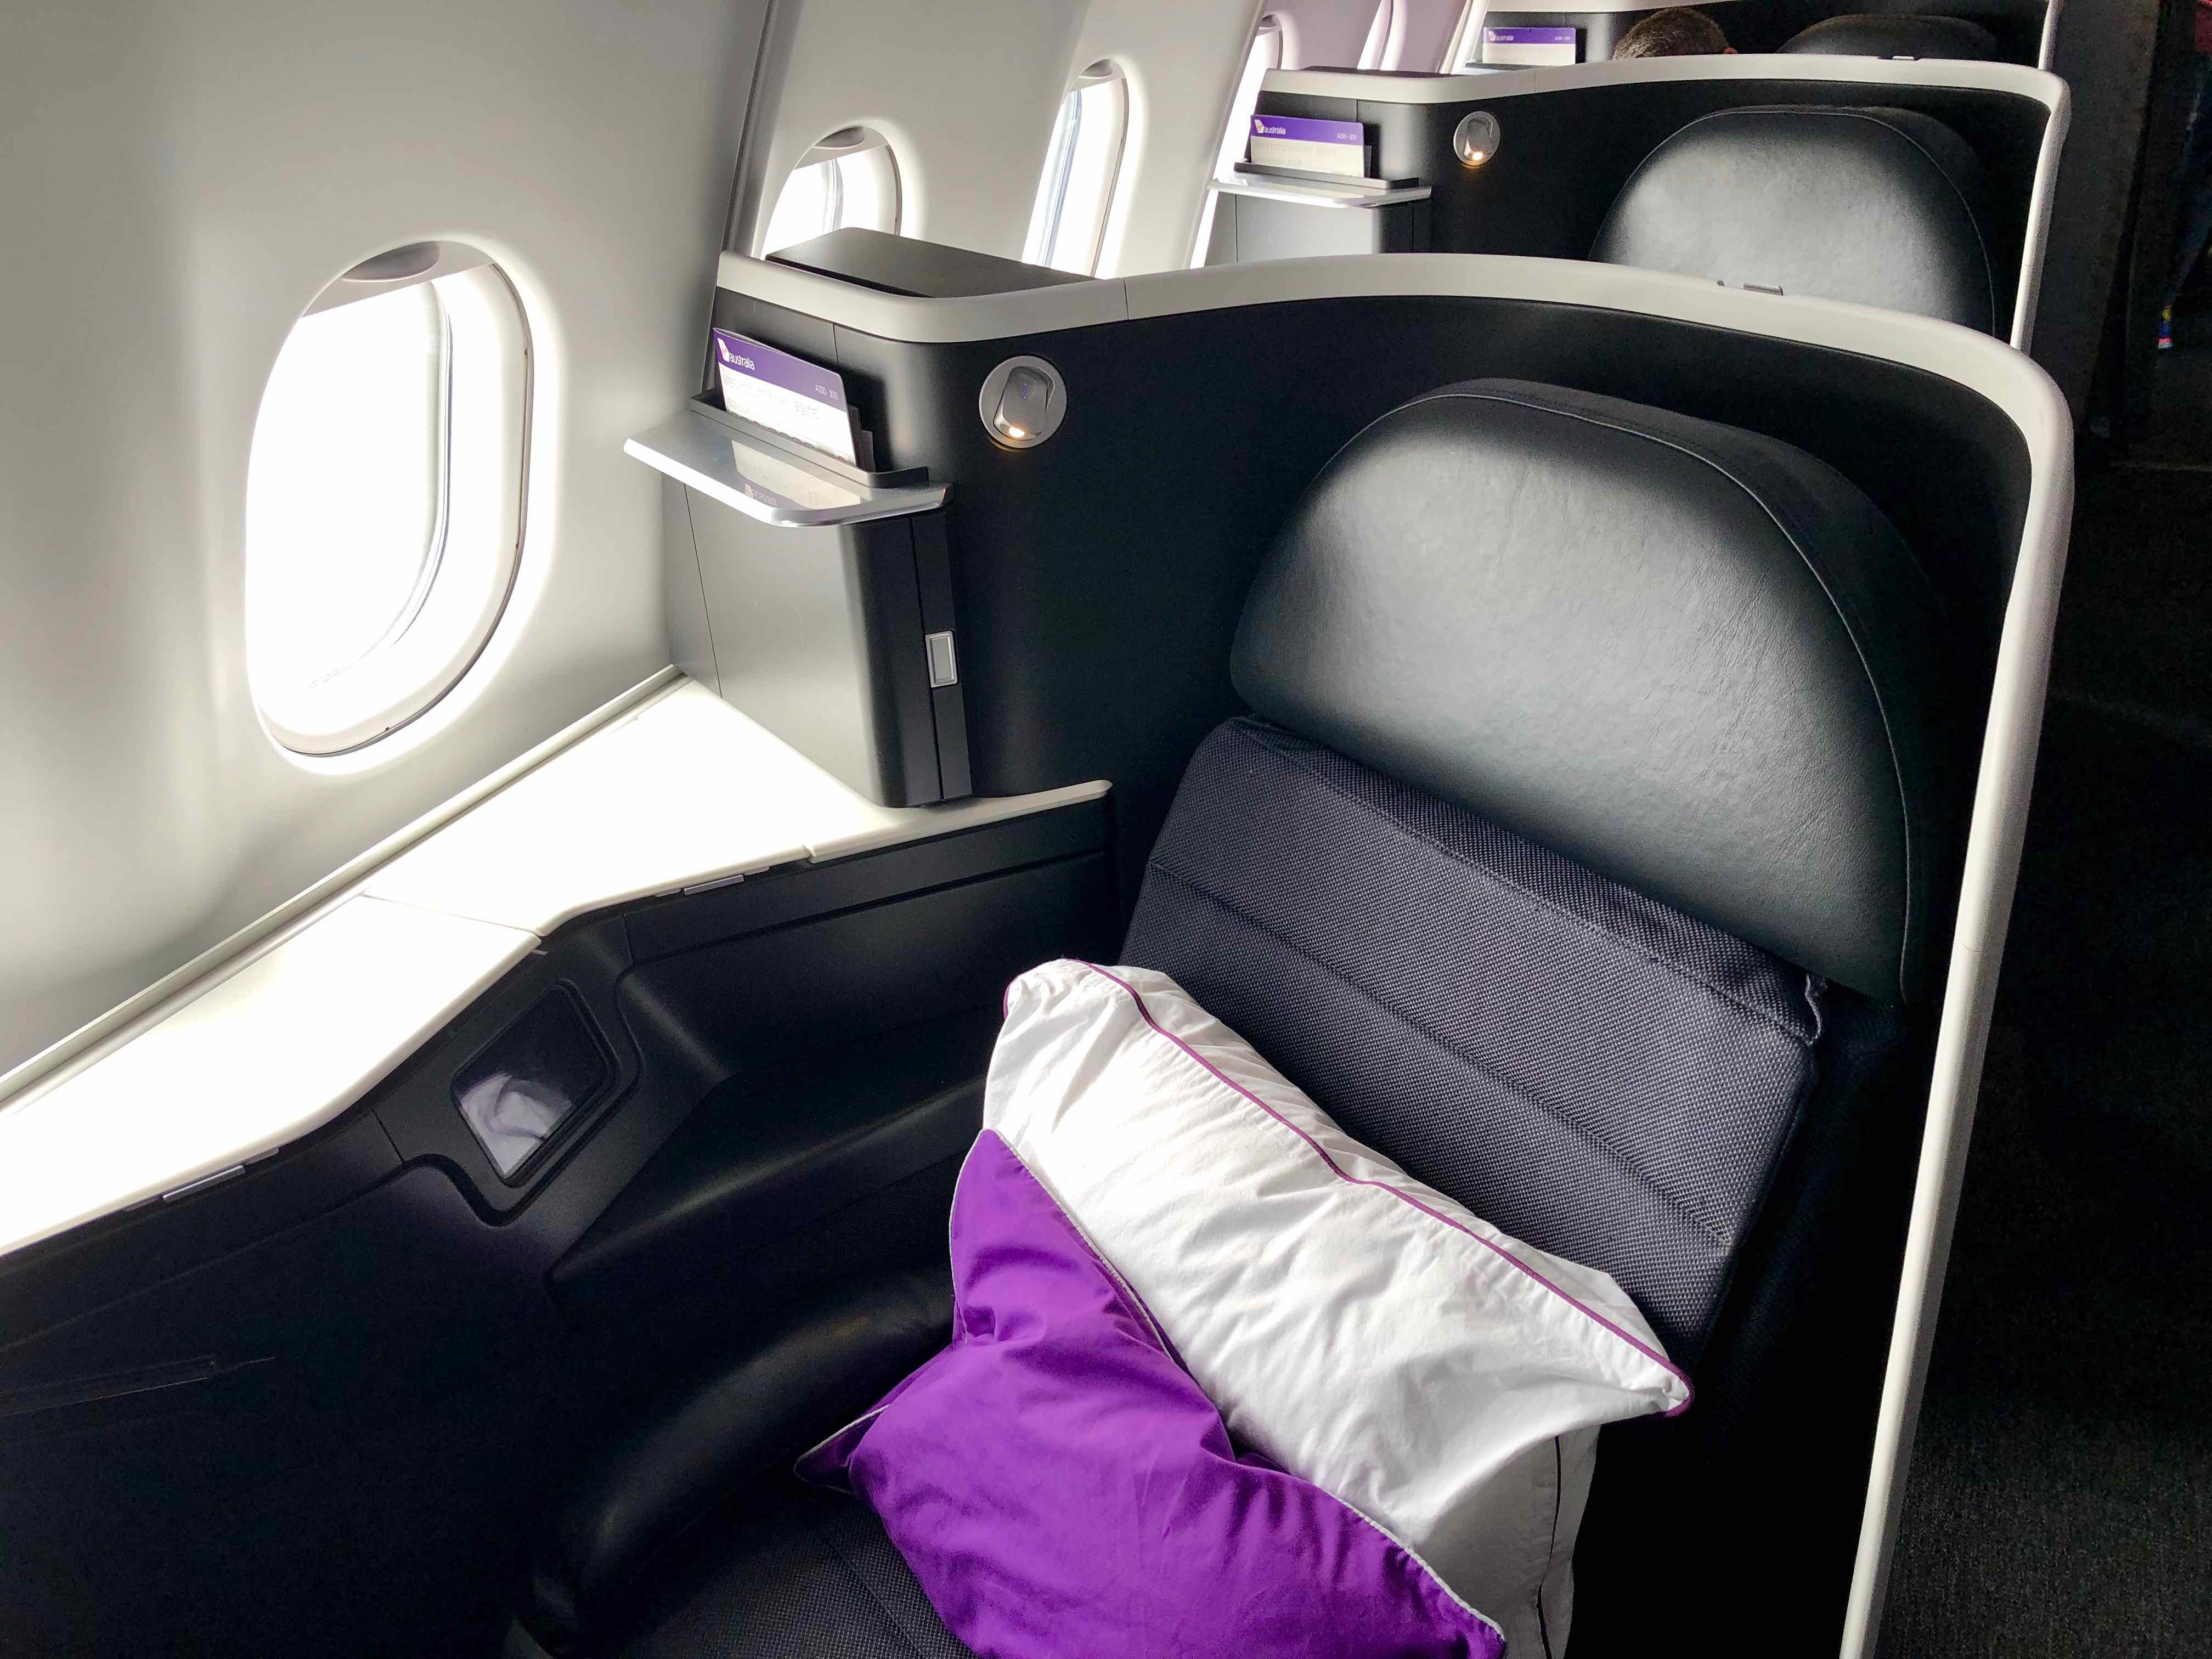 Virgin Australia A330 Business Class seat